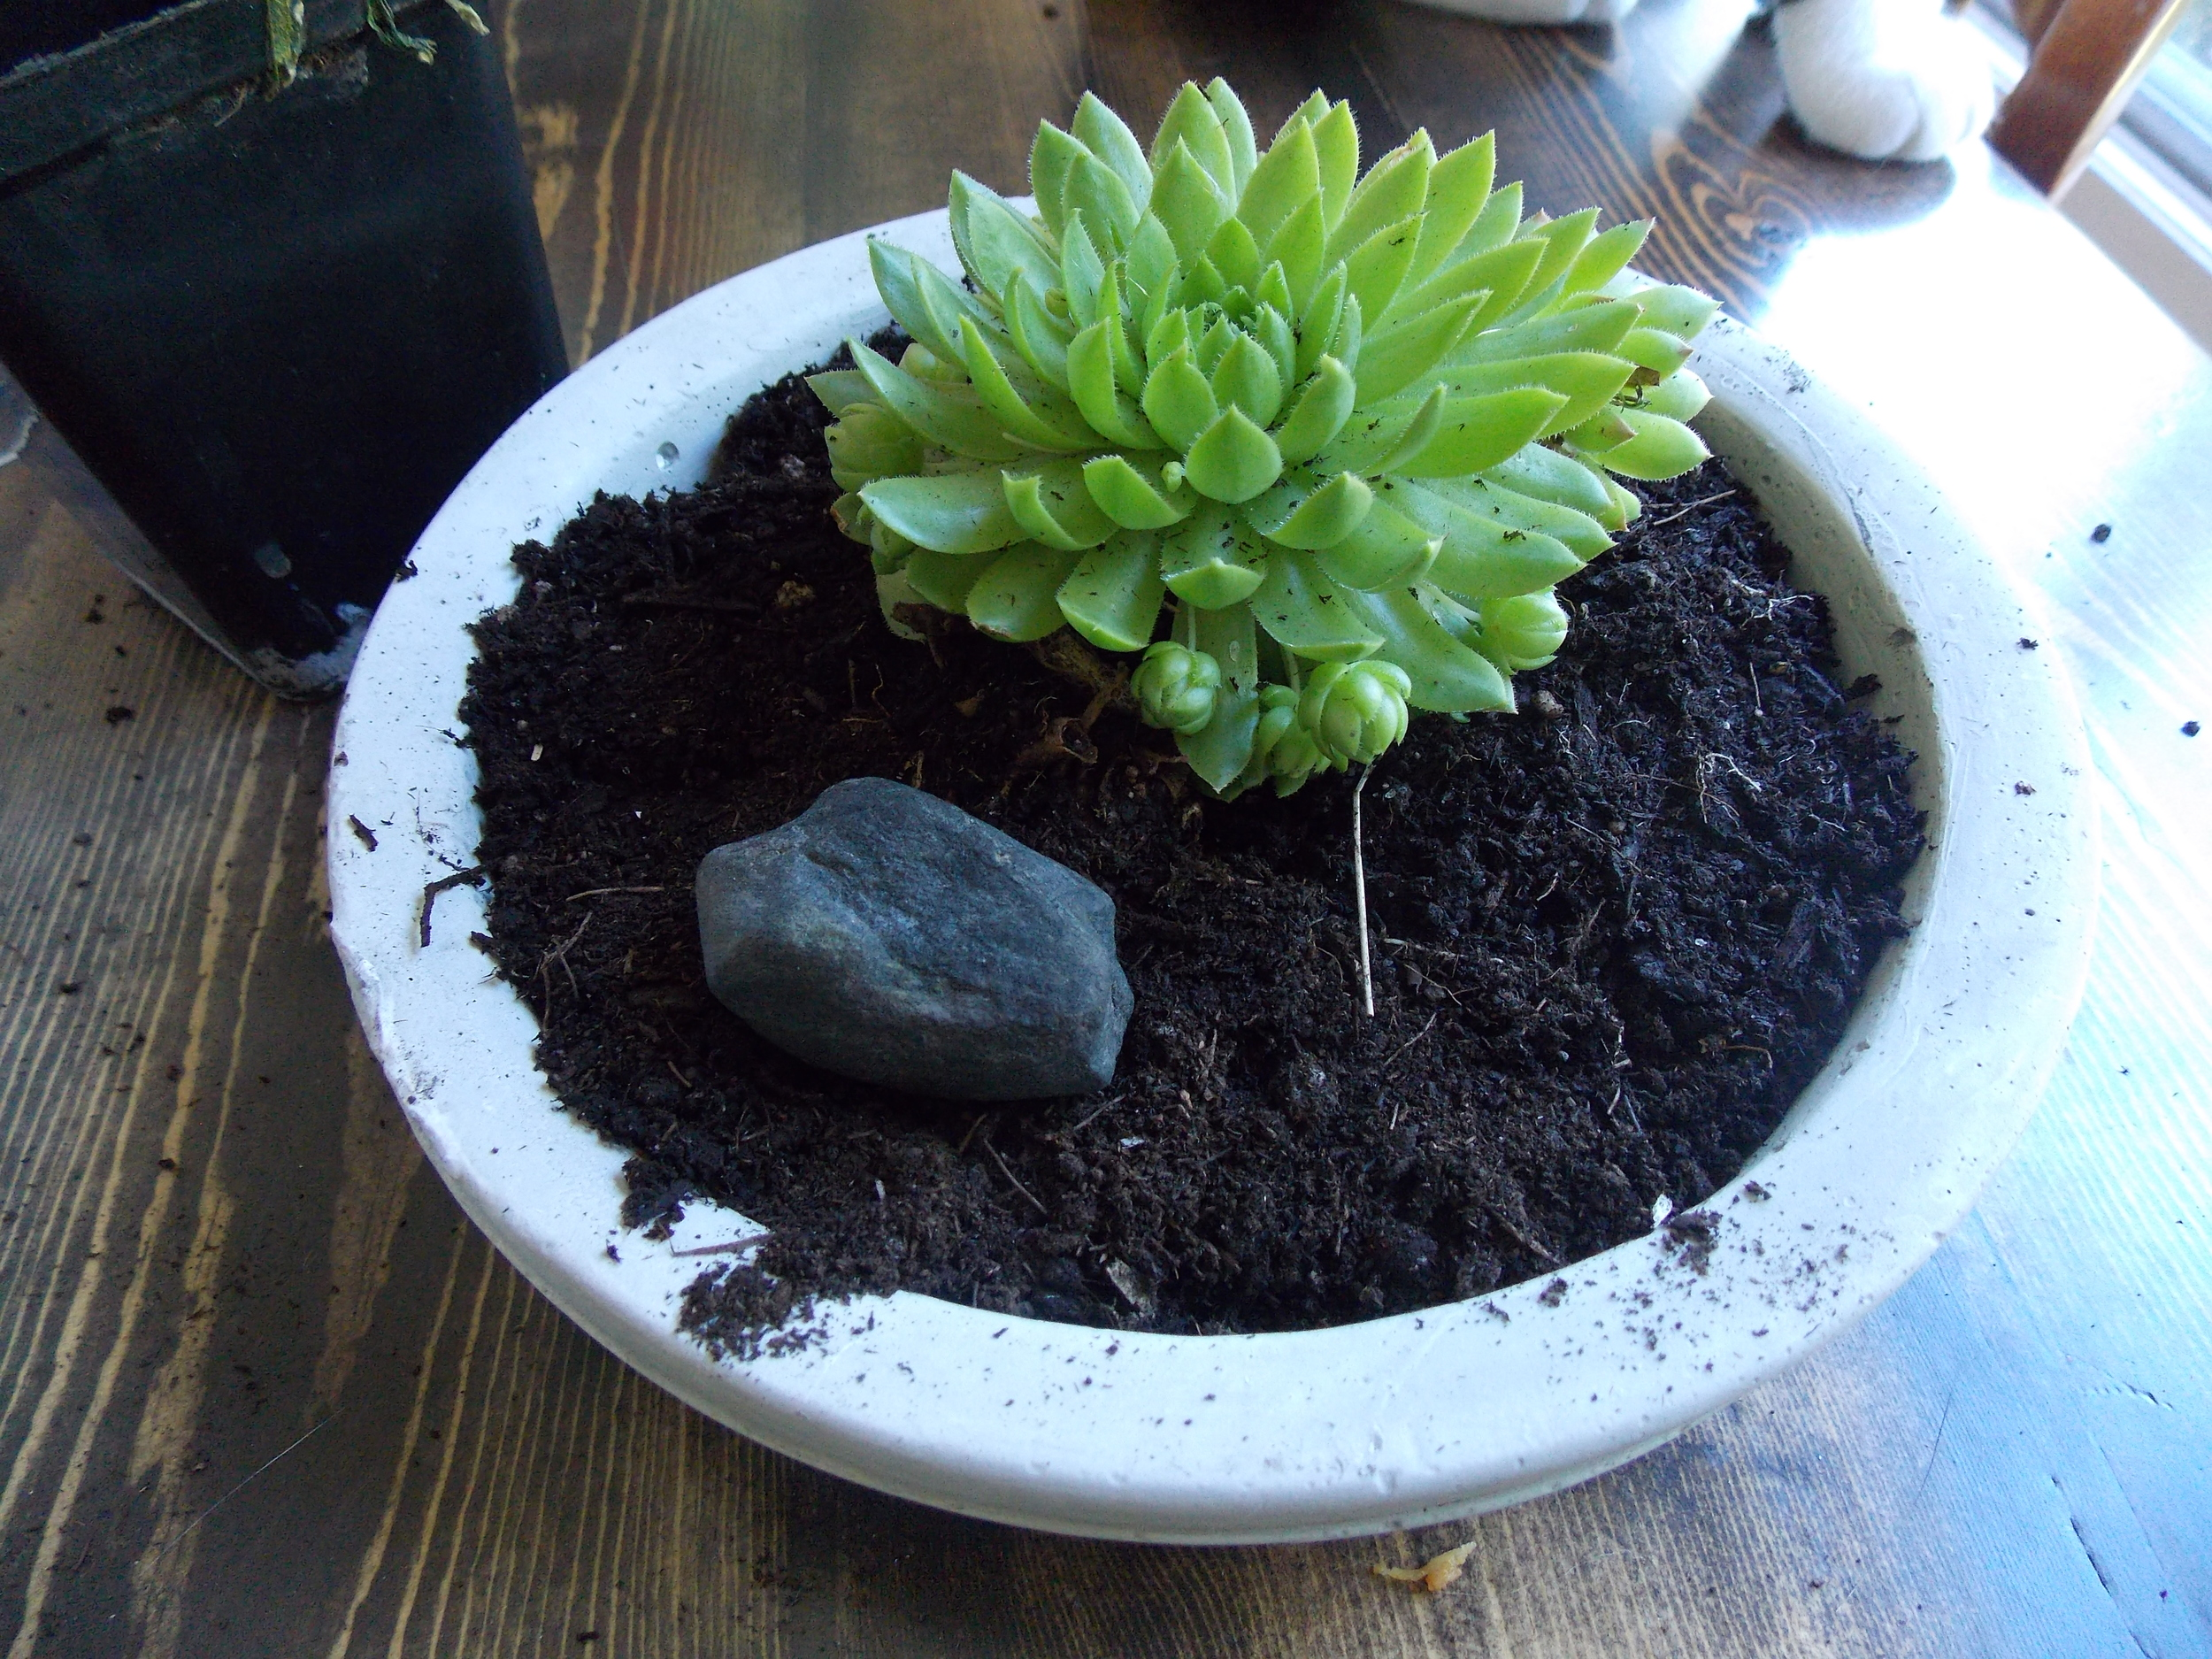 We added just one sentimental rock, but feel free to add a few, but make sure leave room for the succulent to spread! As you can see, ours has a few babies sprouting already!